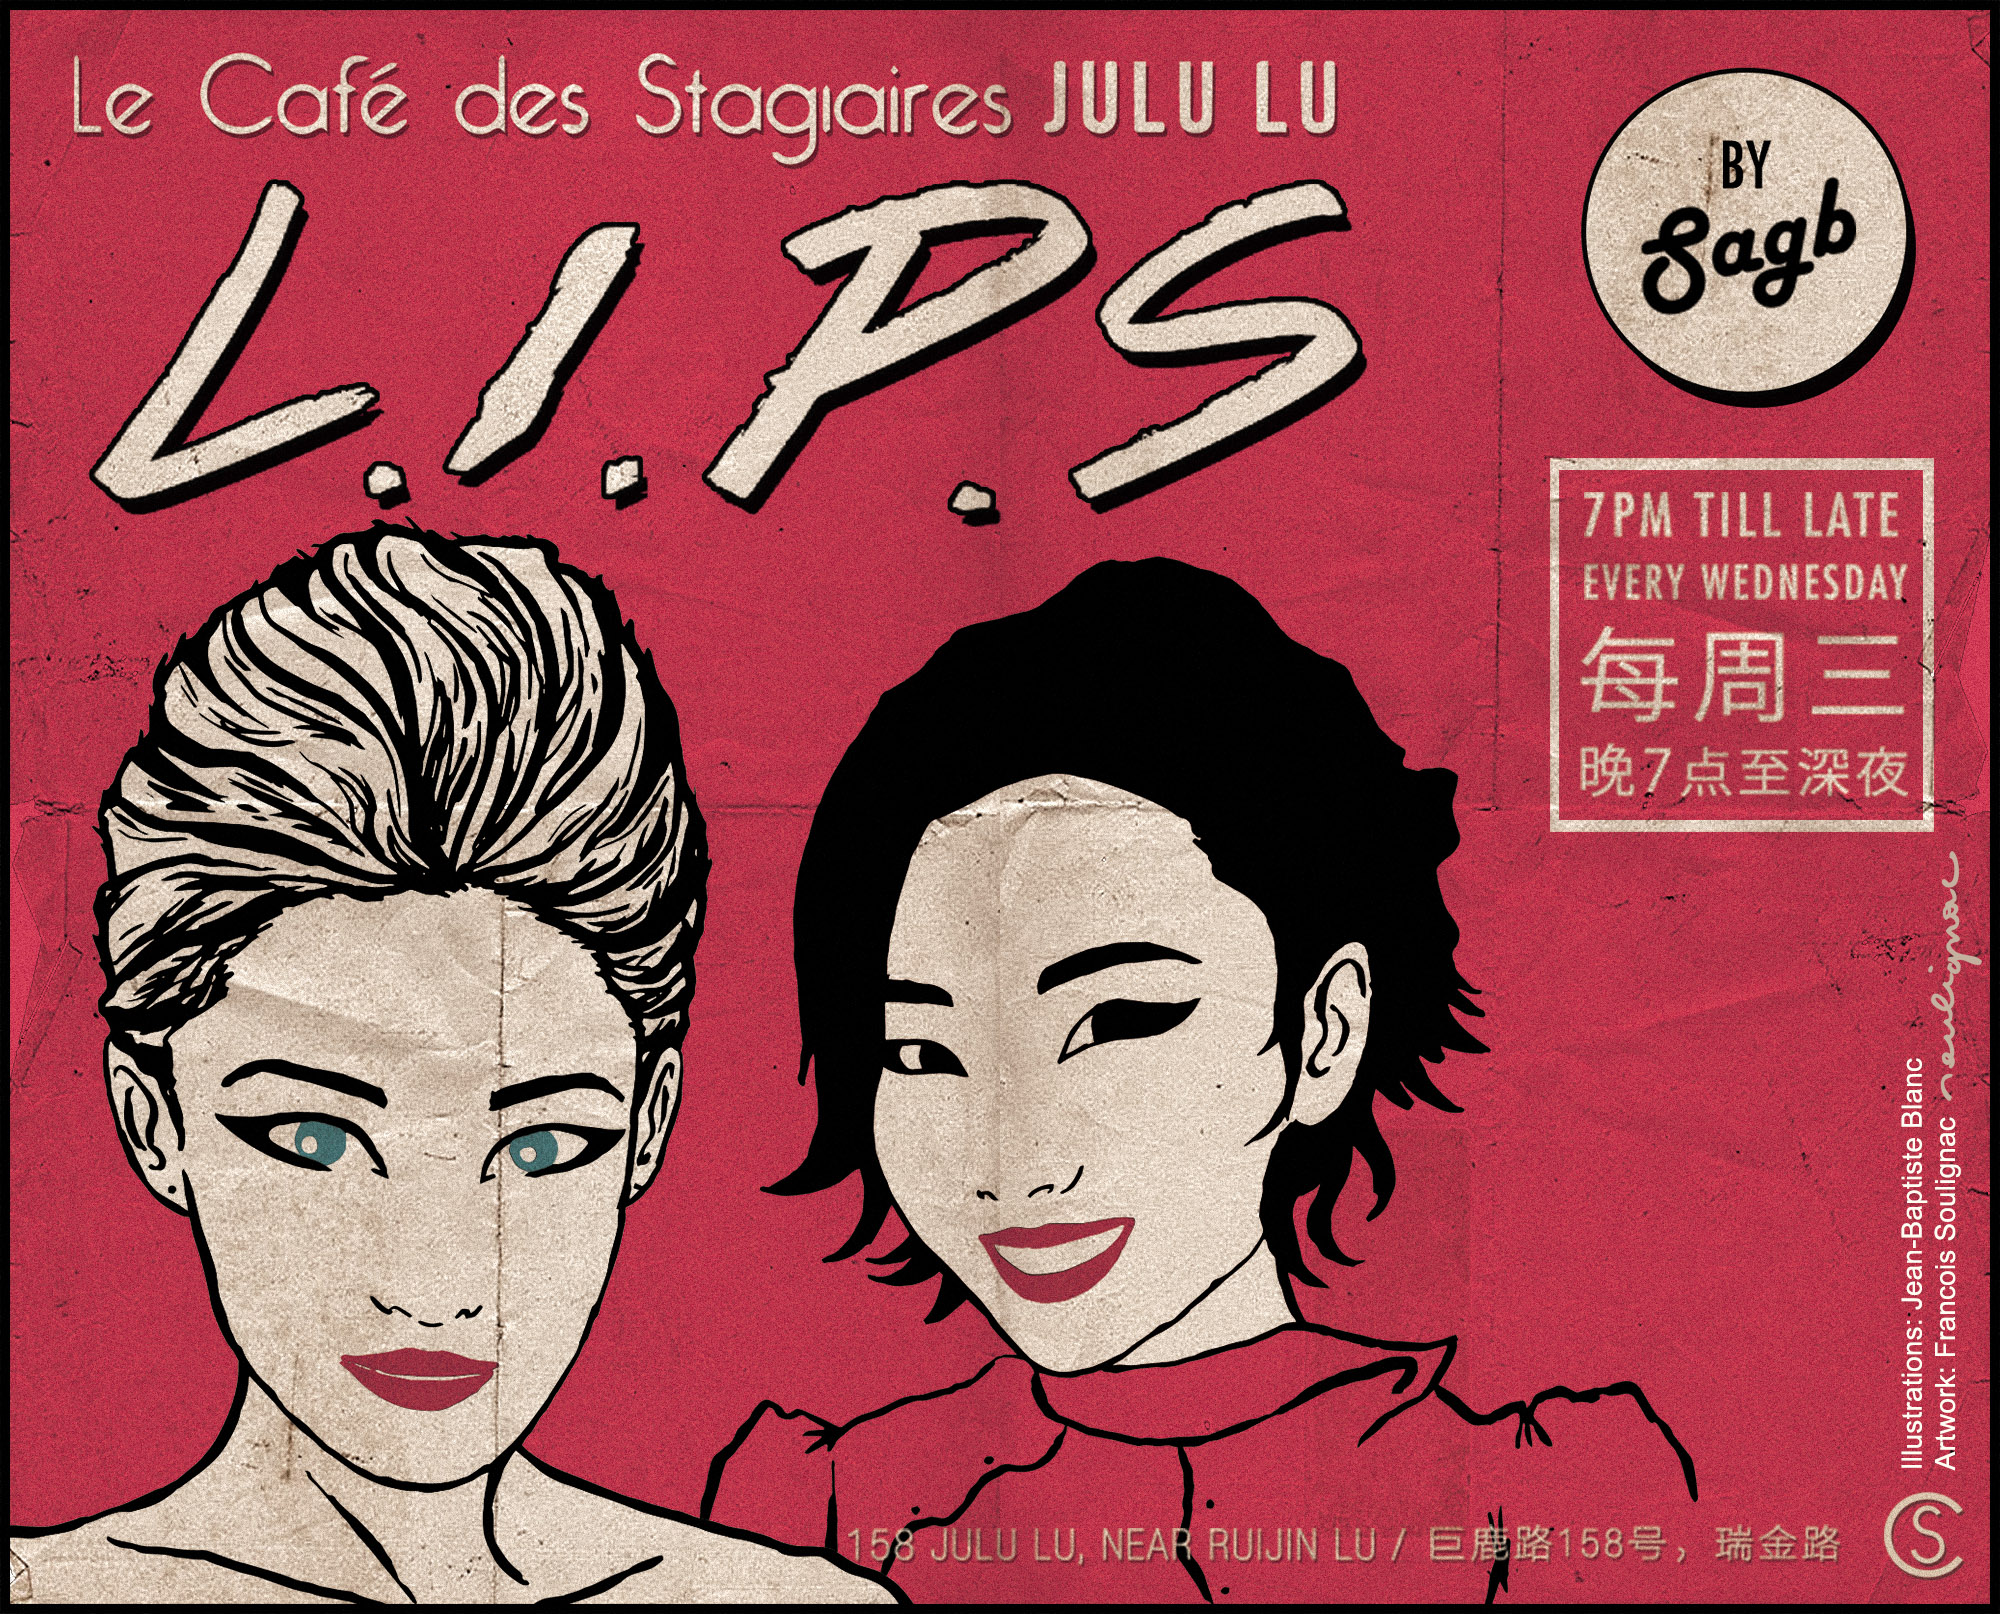 SAGB Shanghai - LIPS Love in Public Space, Café des Stagiaires - Super Attractive Ghetto Blaster - China